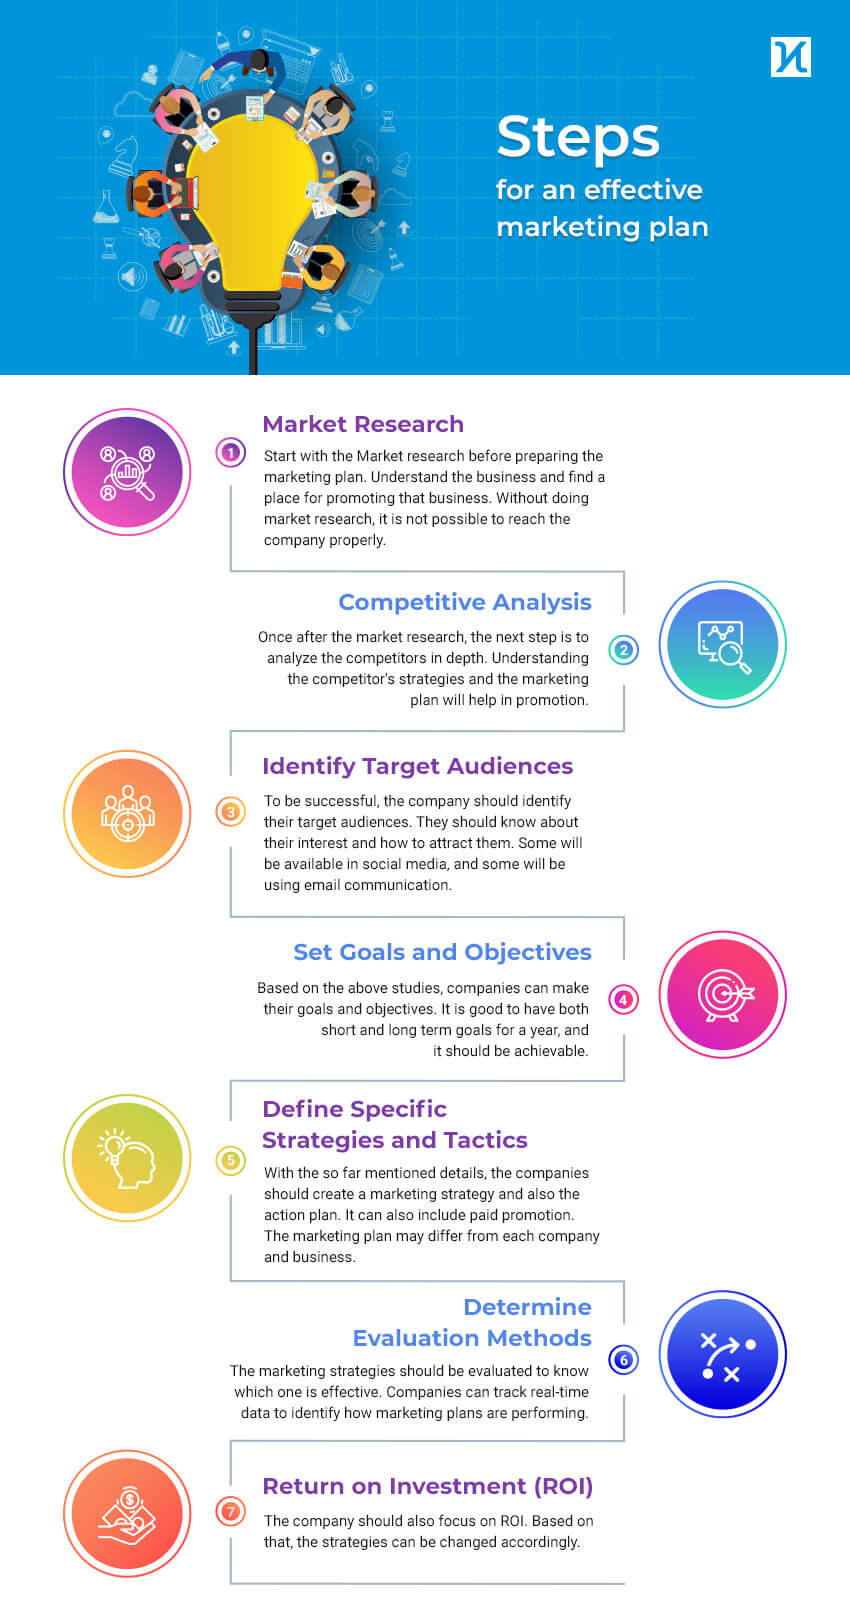 Steps for an effective marketing plan